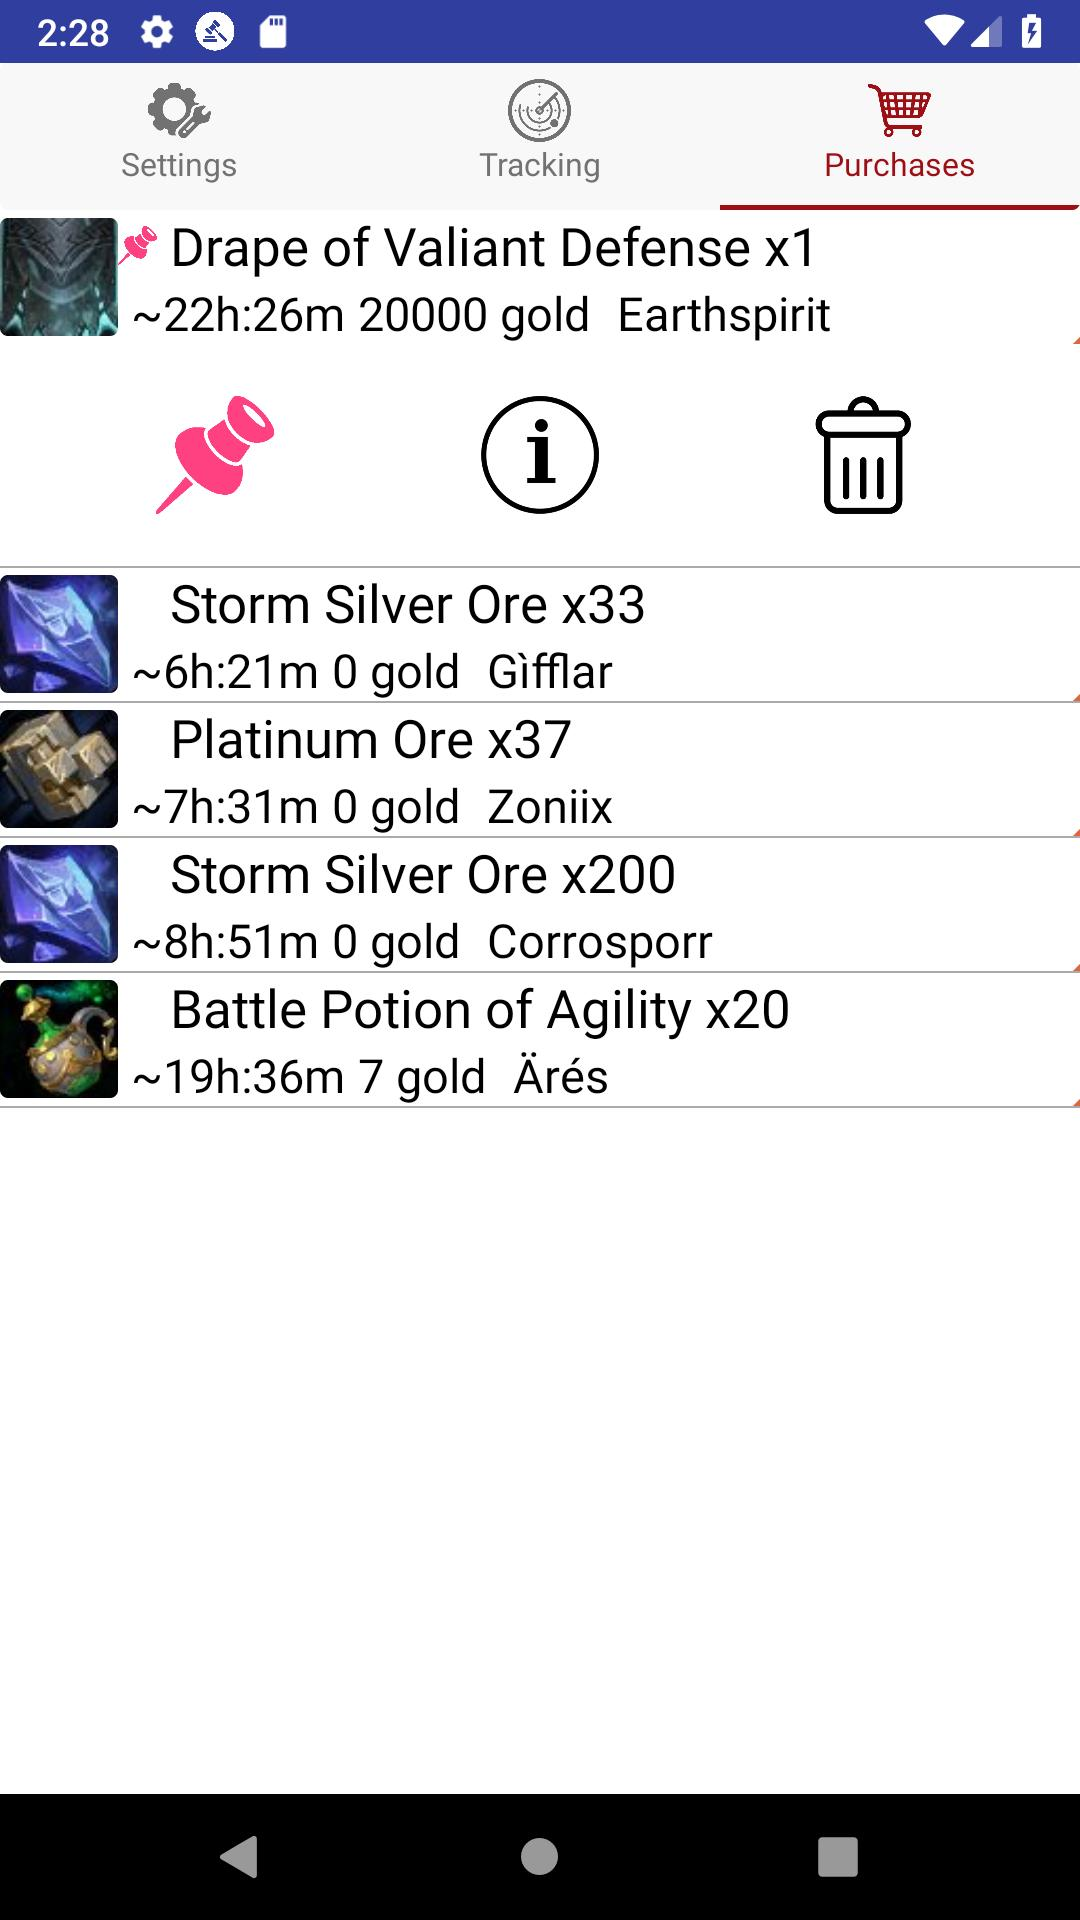 23+ Wow Auction House App 2020 PNG